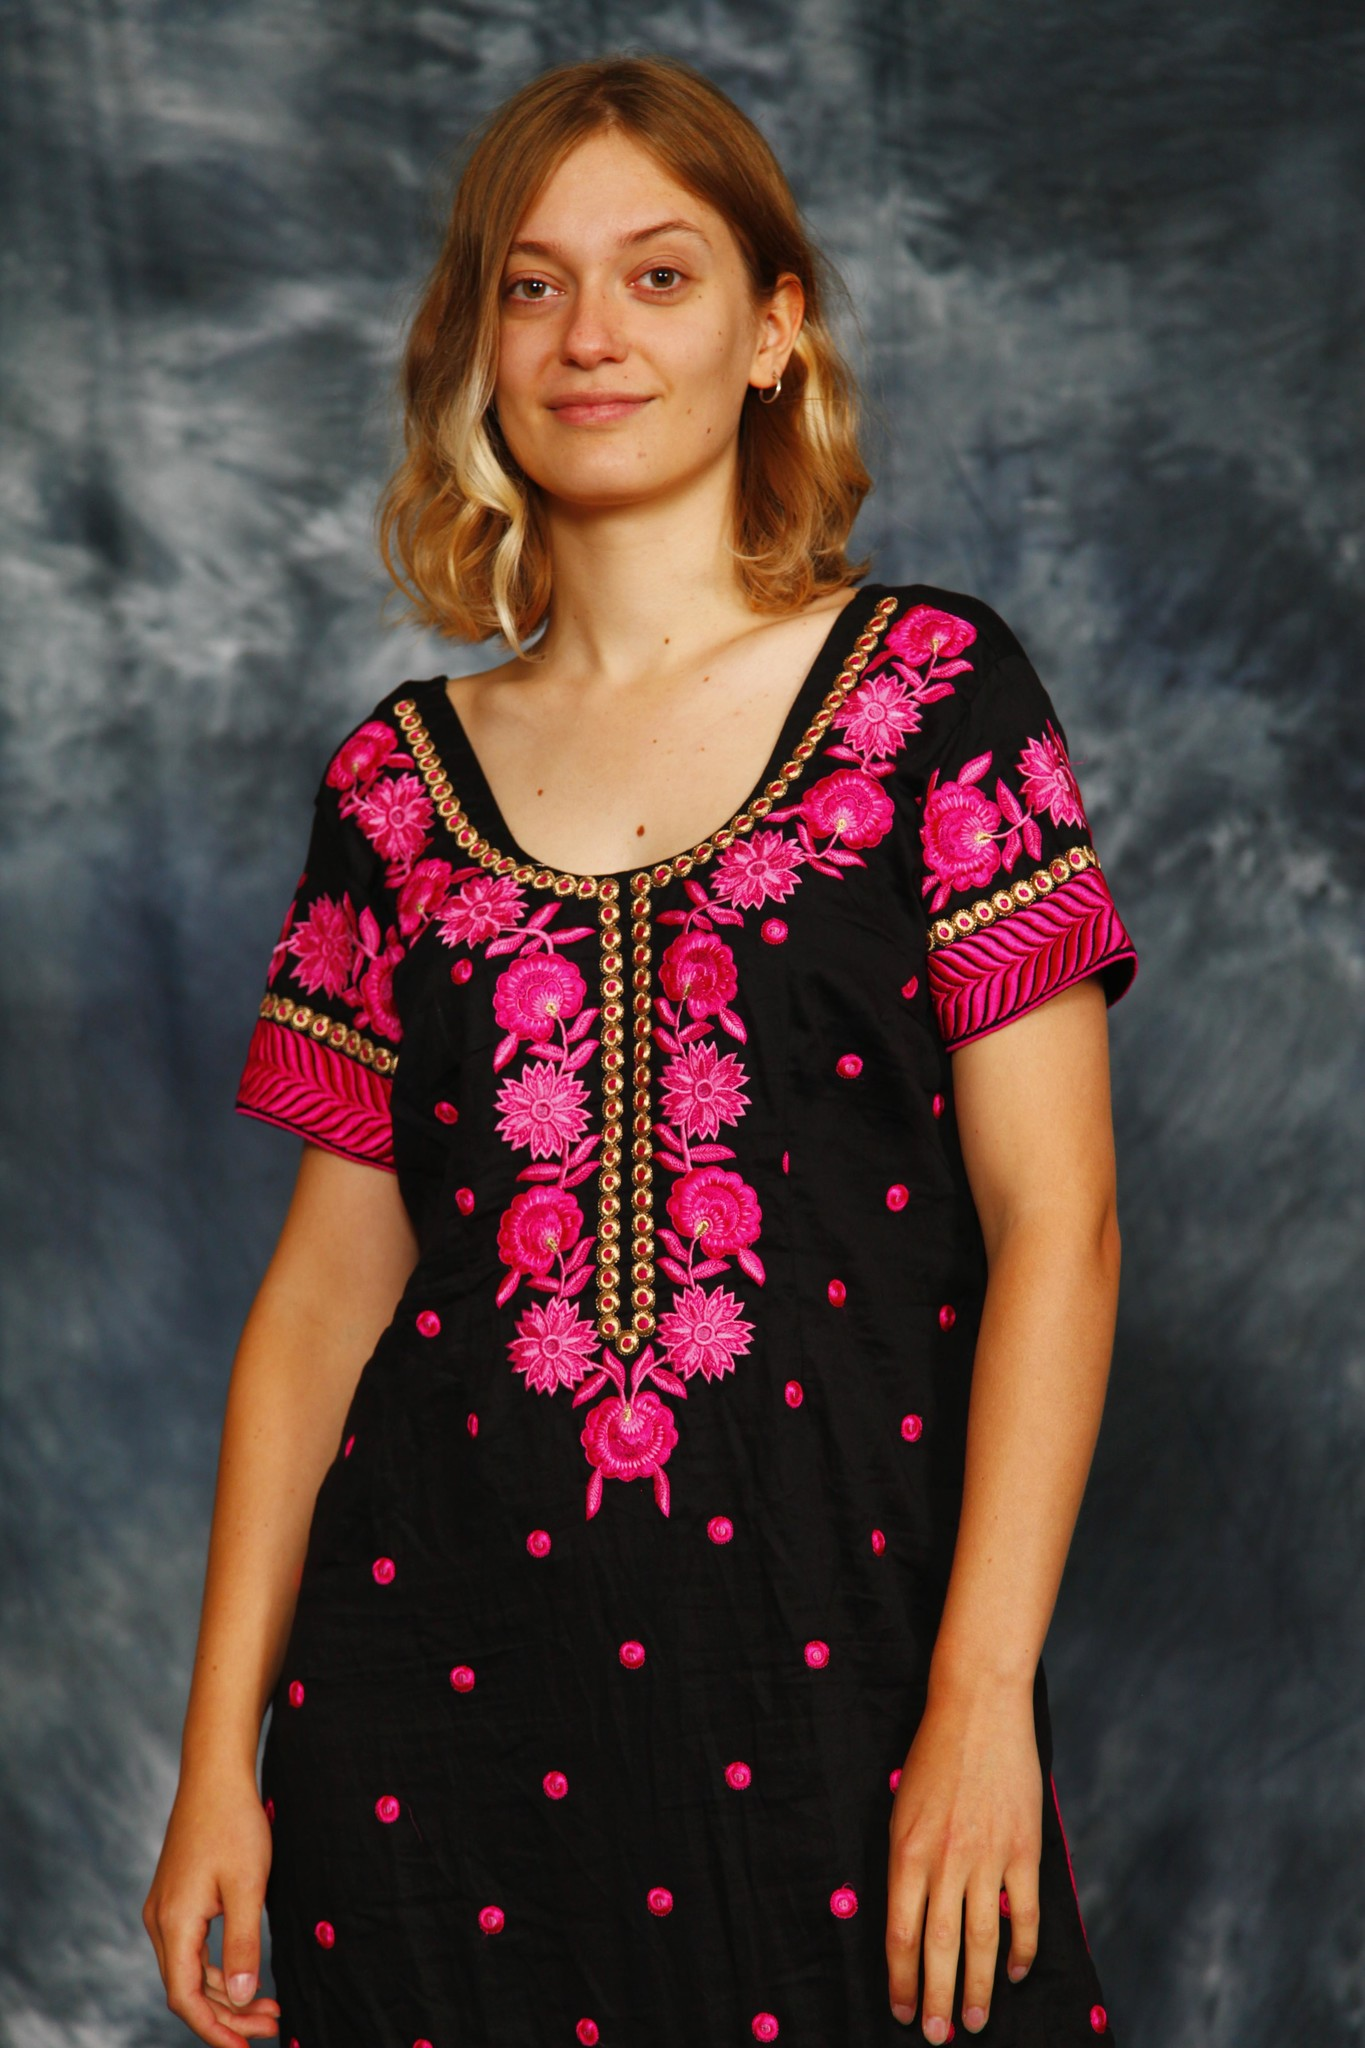 Floral 90s tunic dress